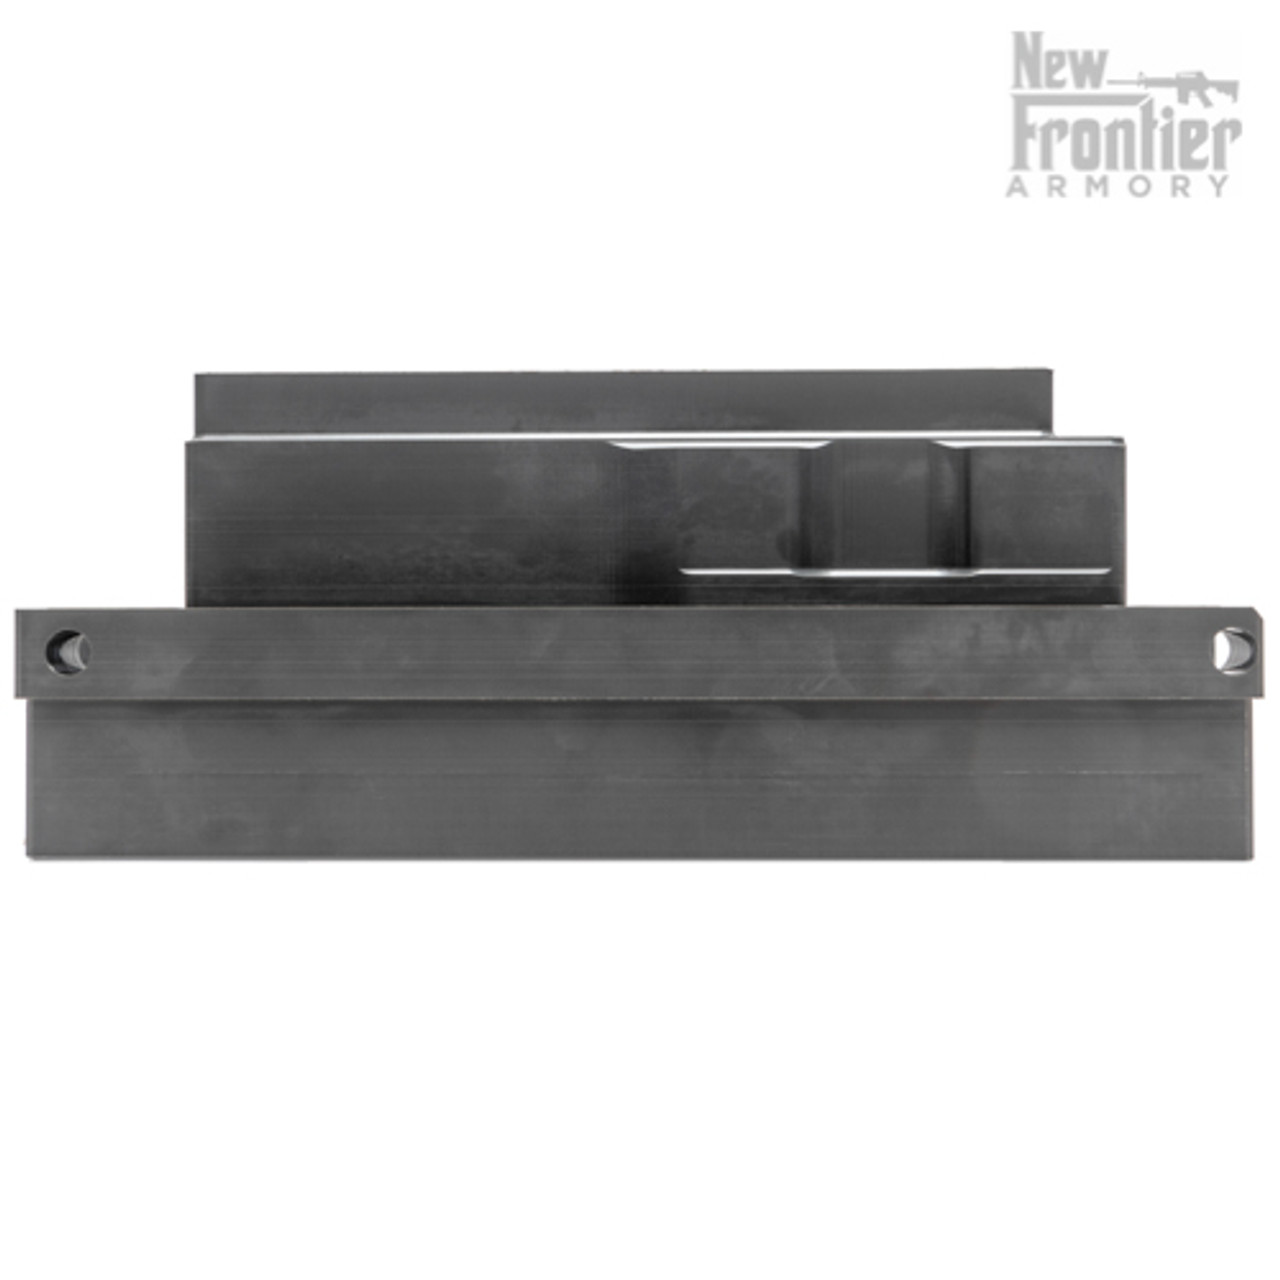 New Frontier Armory Universal Upper Receiver Vise Block